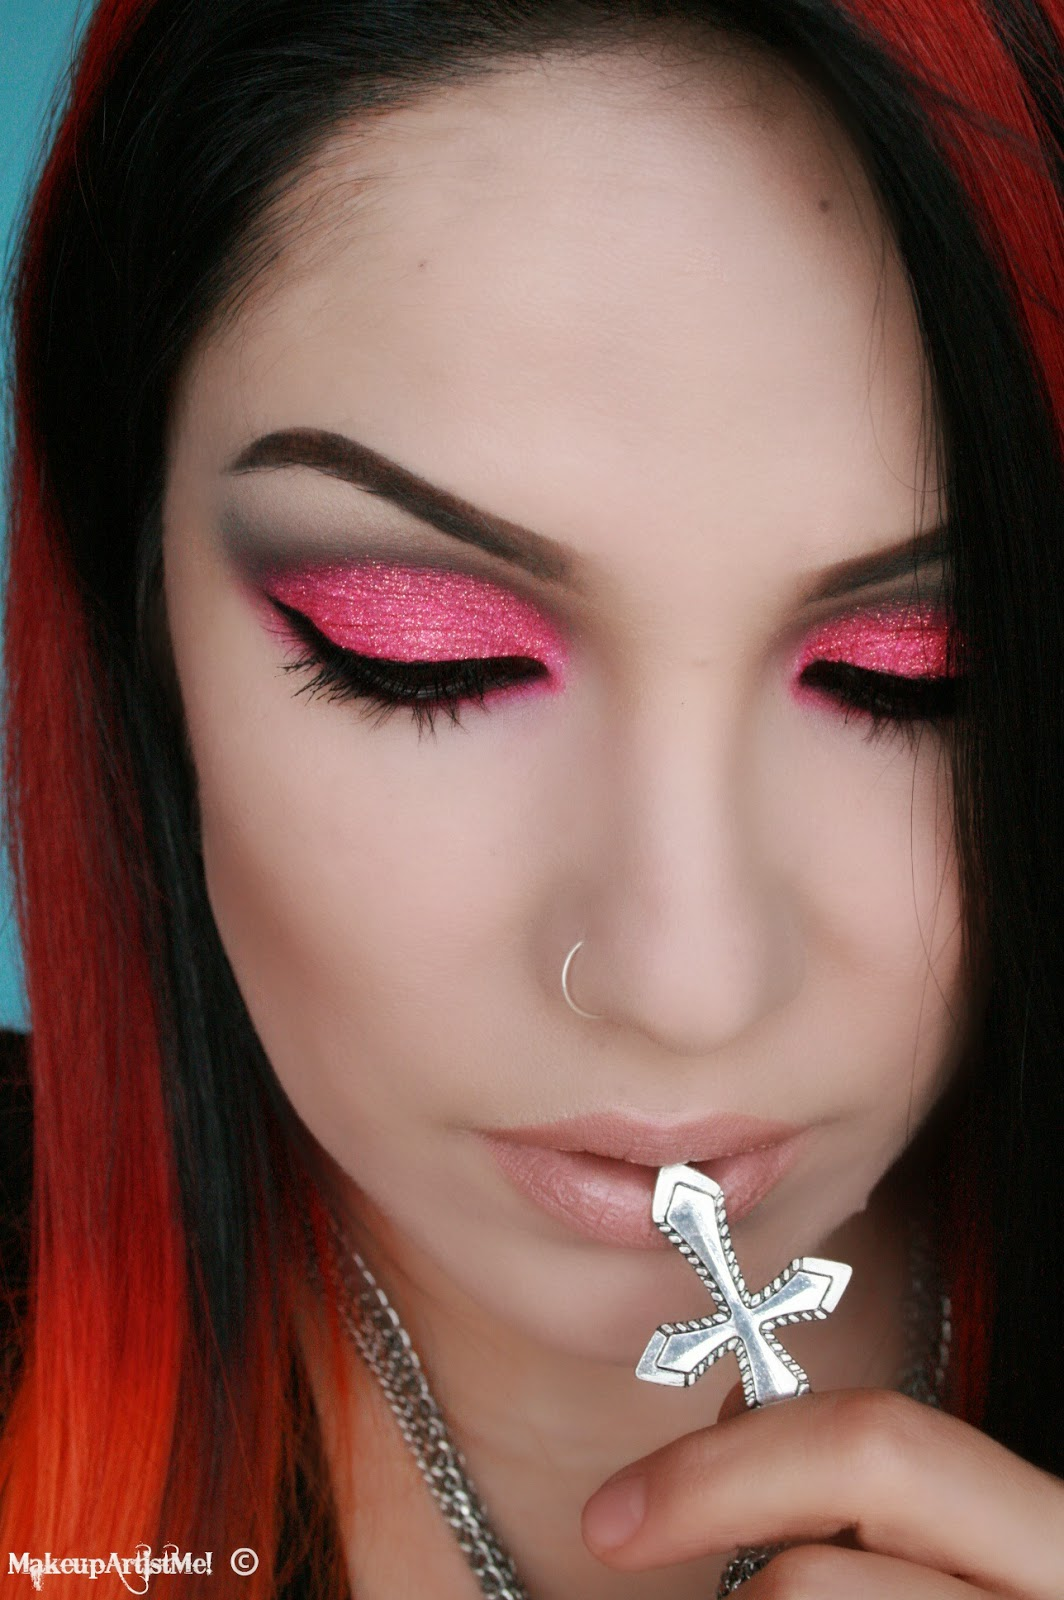 Make Up Fashion And 50 Shades Of Pink: Make-up Artist Me!: Hot For Pink! Makeup Tutorial